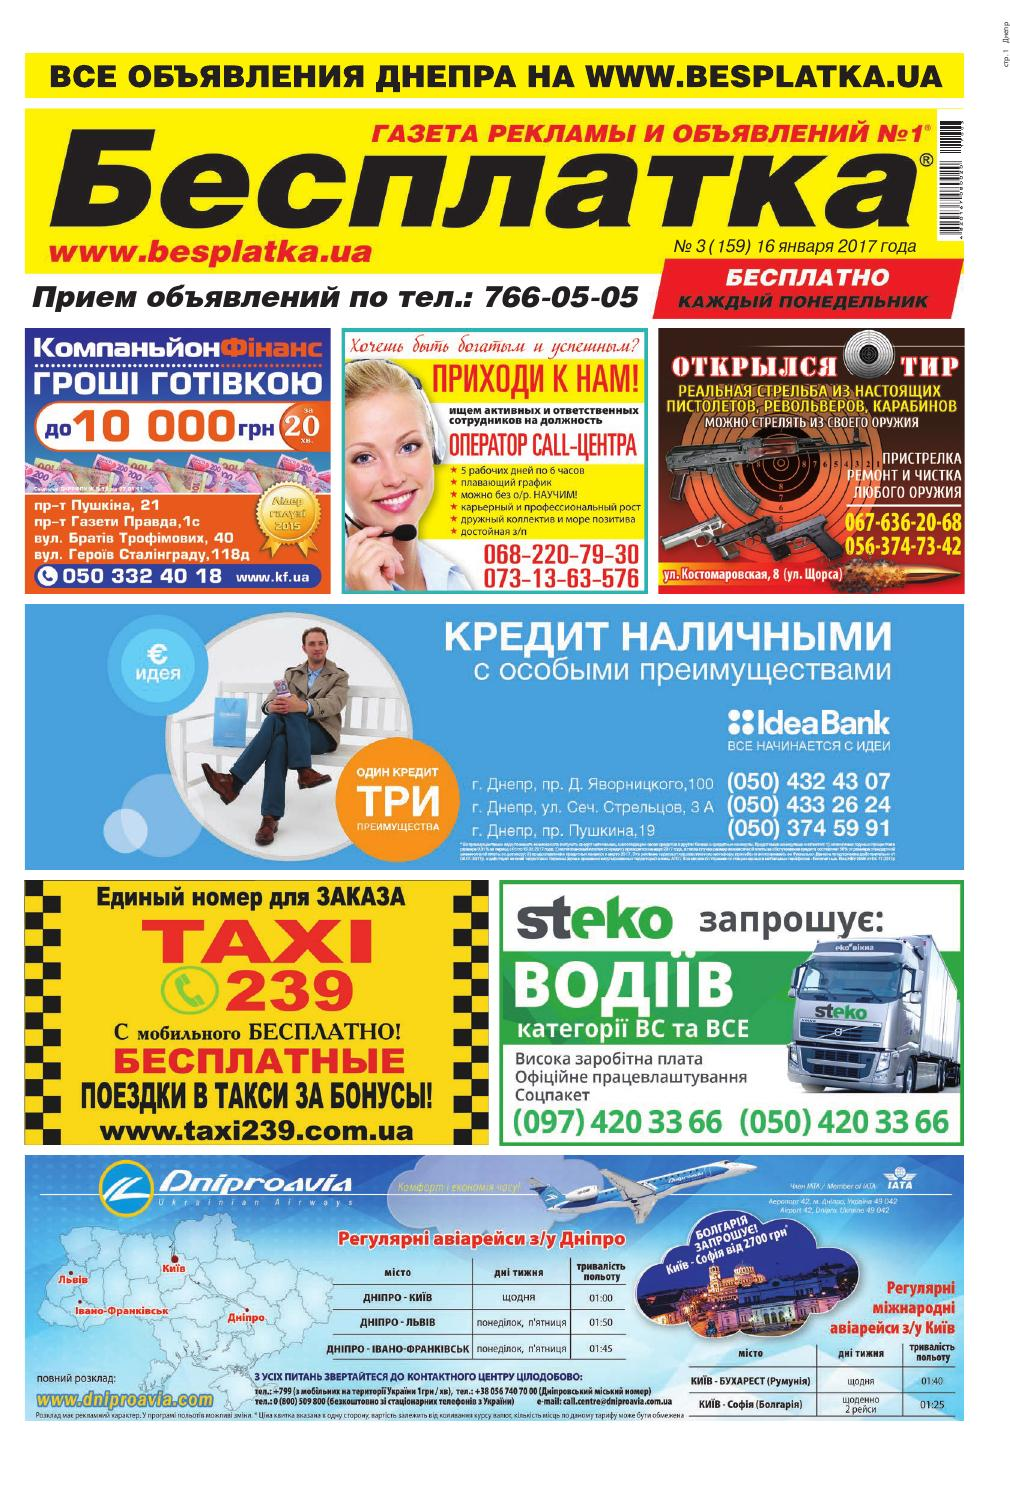 92773fc6f6b96 Besplatka #3 Днепр by besplatka ukraine - issuu